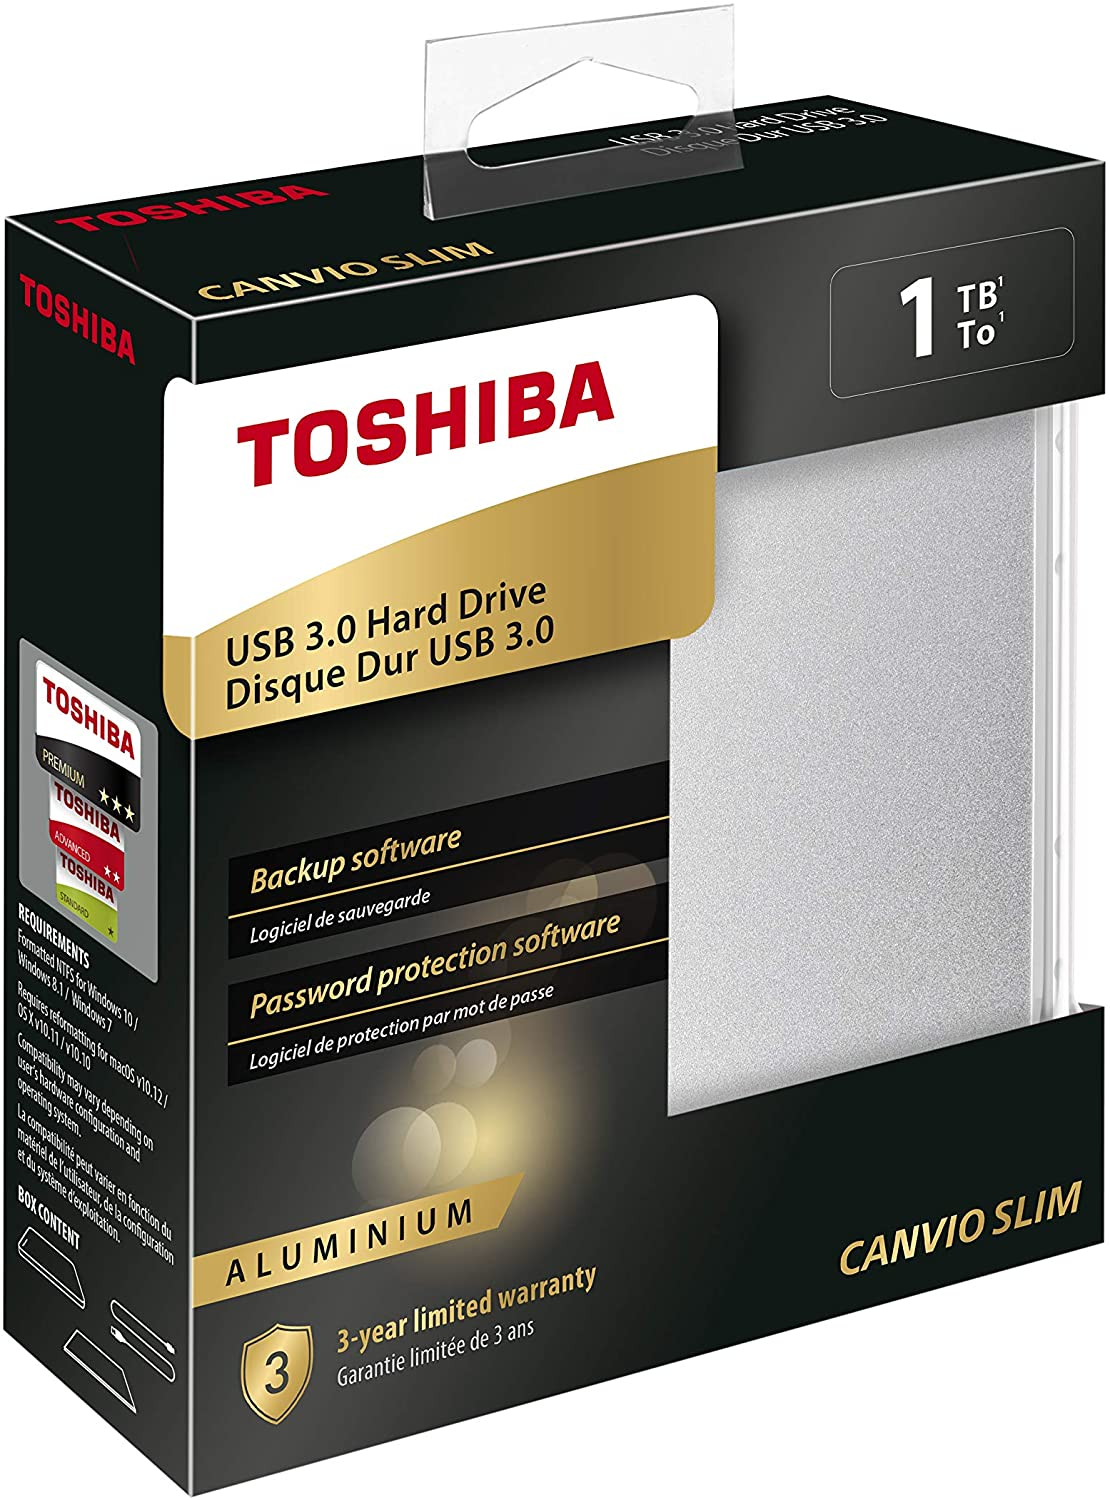 هارد ديسك خارجي Toshiba Canvio Slim 1TB Aluminium Portable External Hard Drive USB 3.0 فضي